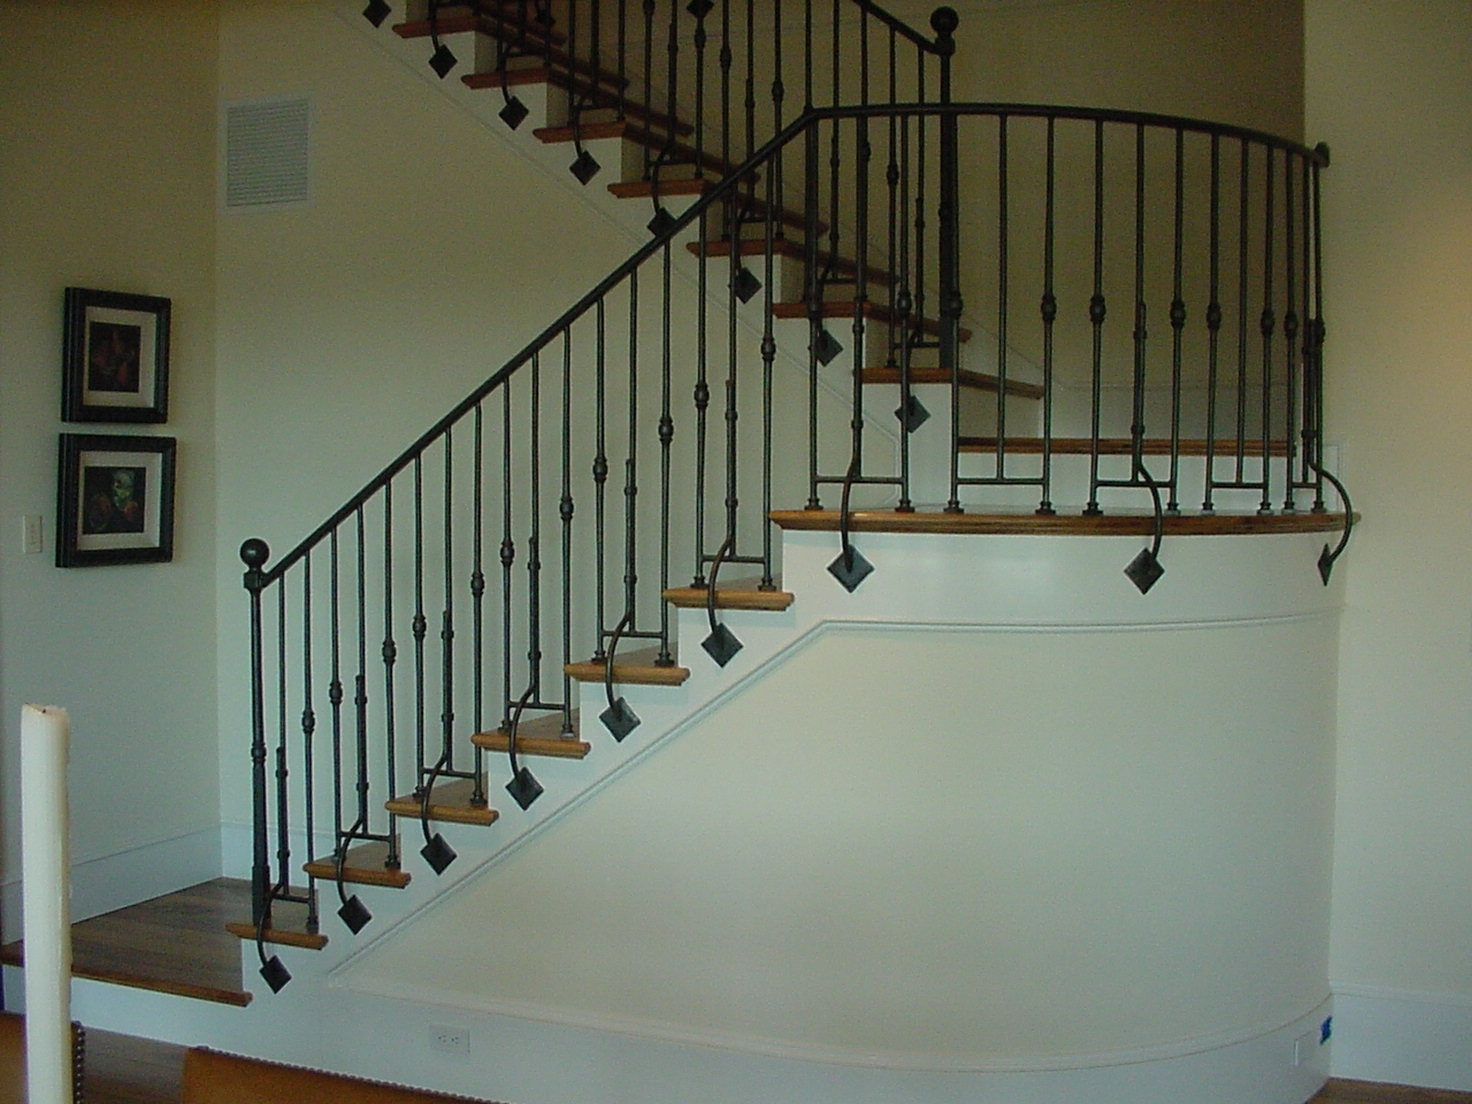 stairrailingcurved0010